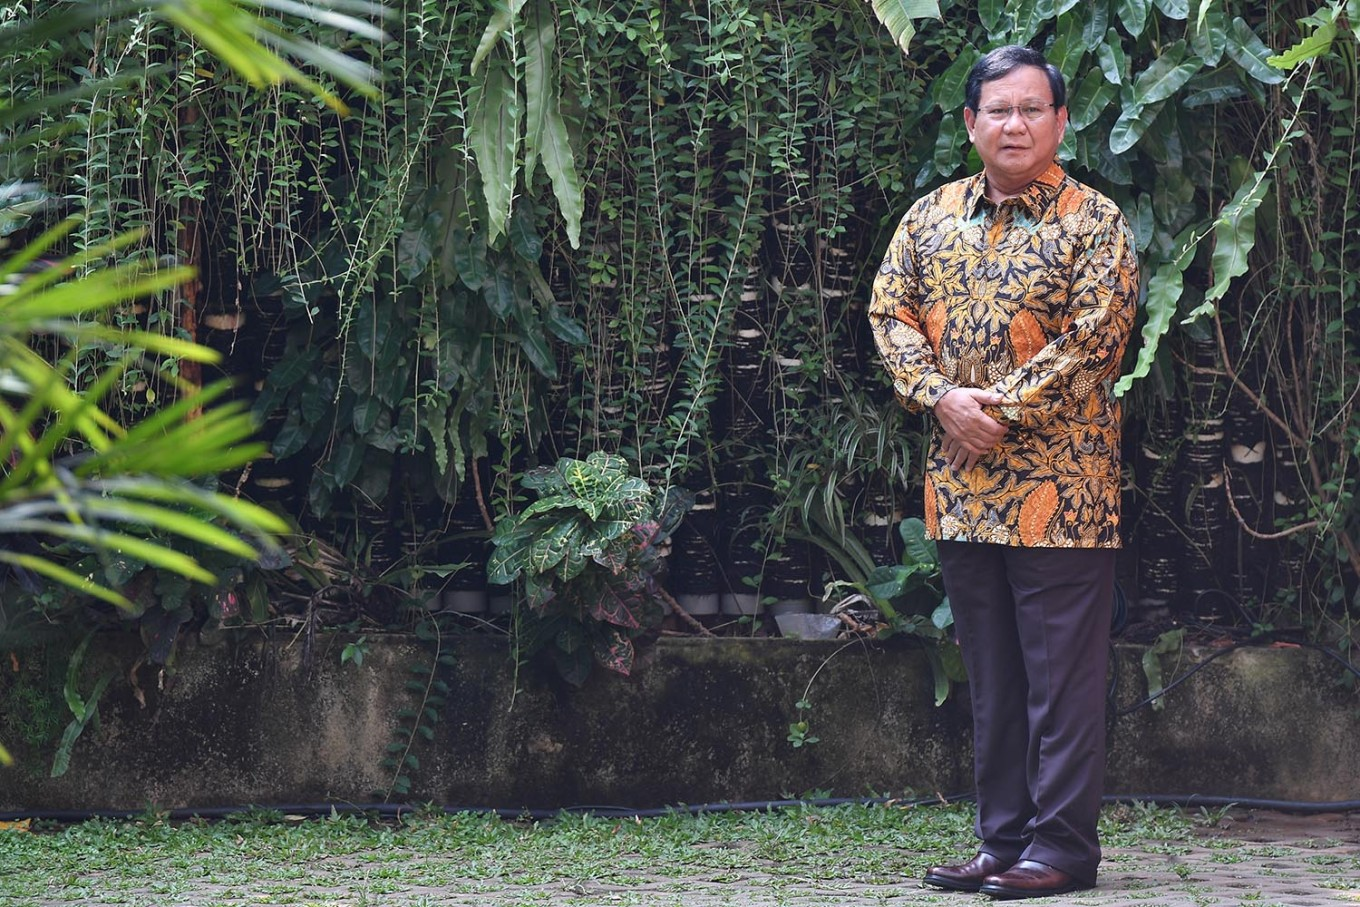 'New' Prabowo looks to appeal to millennials